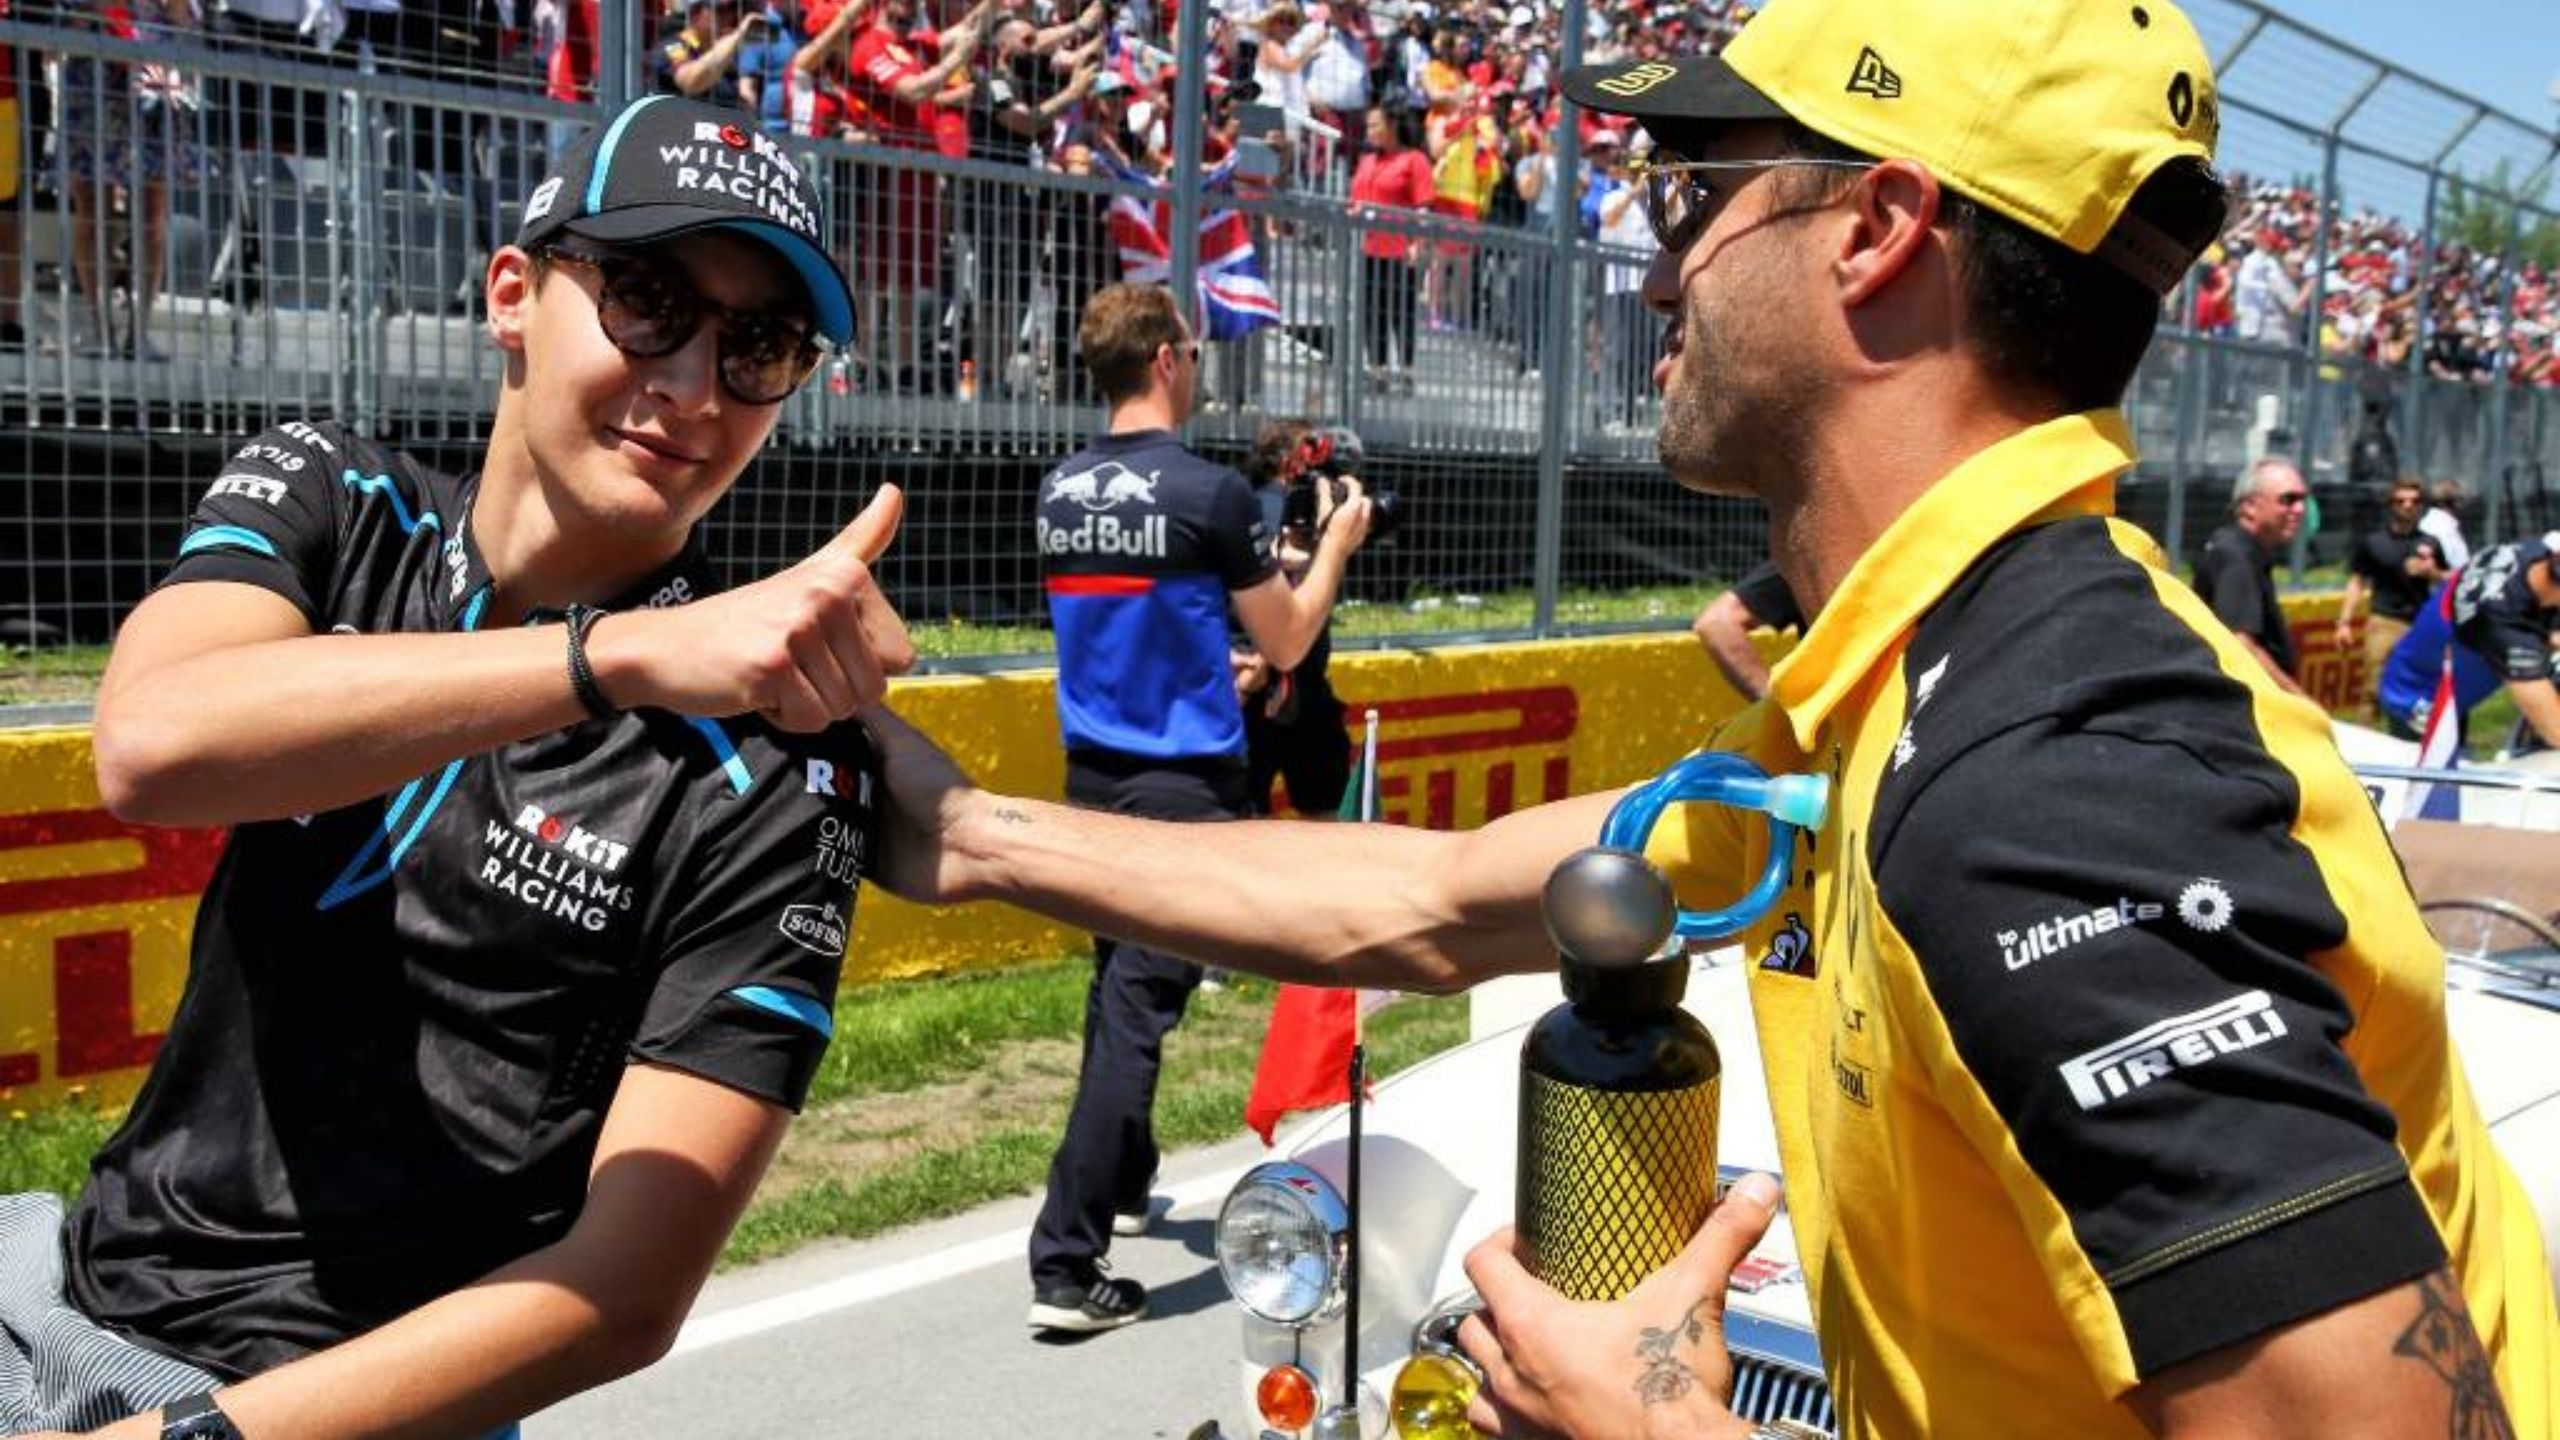 """""""I was hungry to go and compete"""" - Covid-19 lockdown made Daniel Ricciardo fall in love with Formula 1 all over again"""